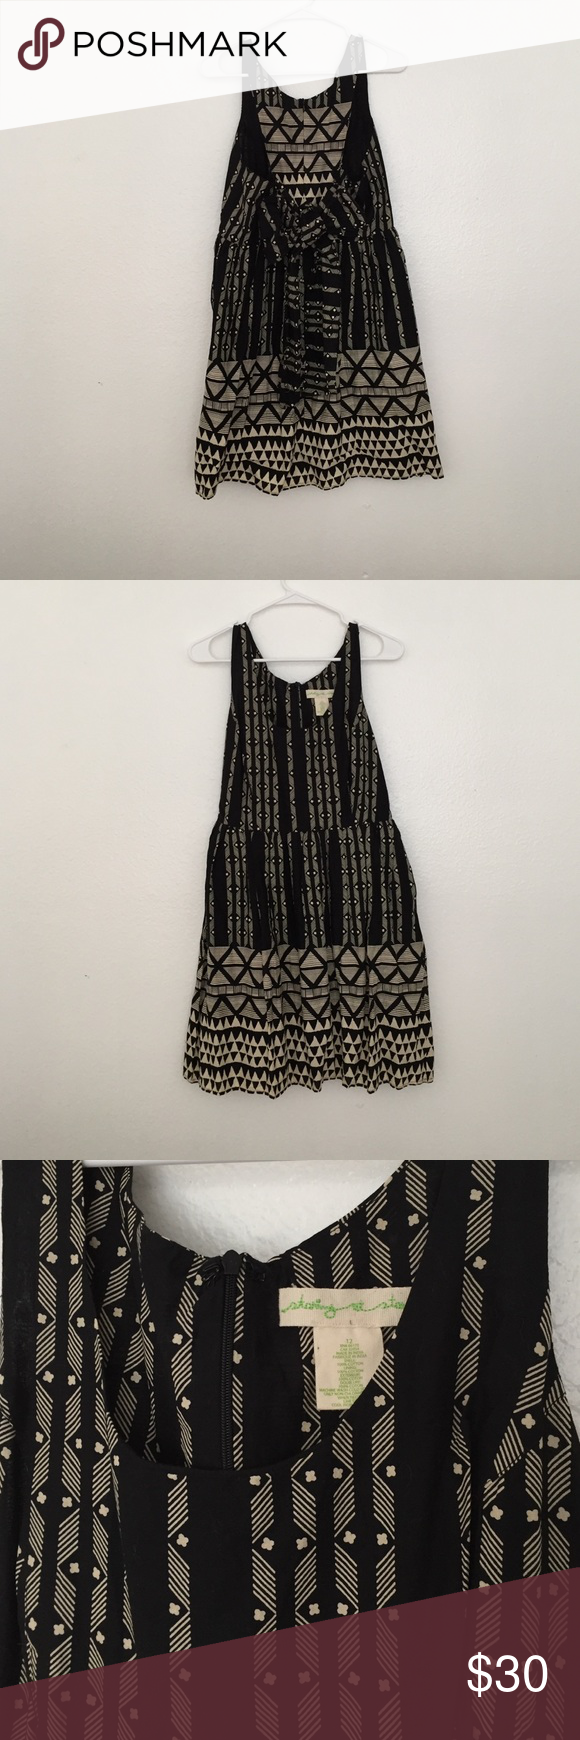 NWOT Urban Outfitters Black/White Print Dress NWOT black and white dress in a geometric print. Features a bow tie in the back of the dress (multiple ways to style) and pockets!!Brand is Staring at the Stars and it was purchased at Urban Outfitters. Size: 12. Urban Outfitters Dresses Mini